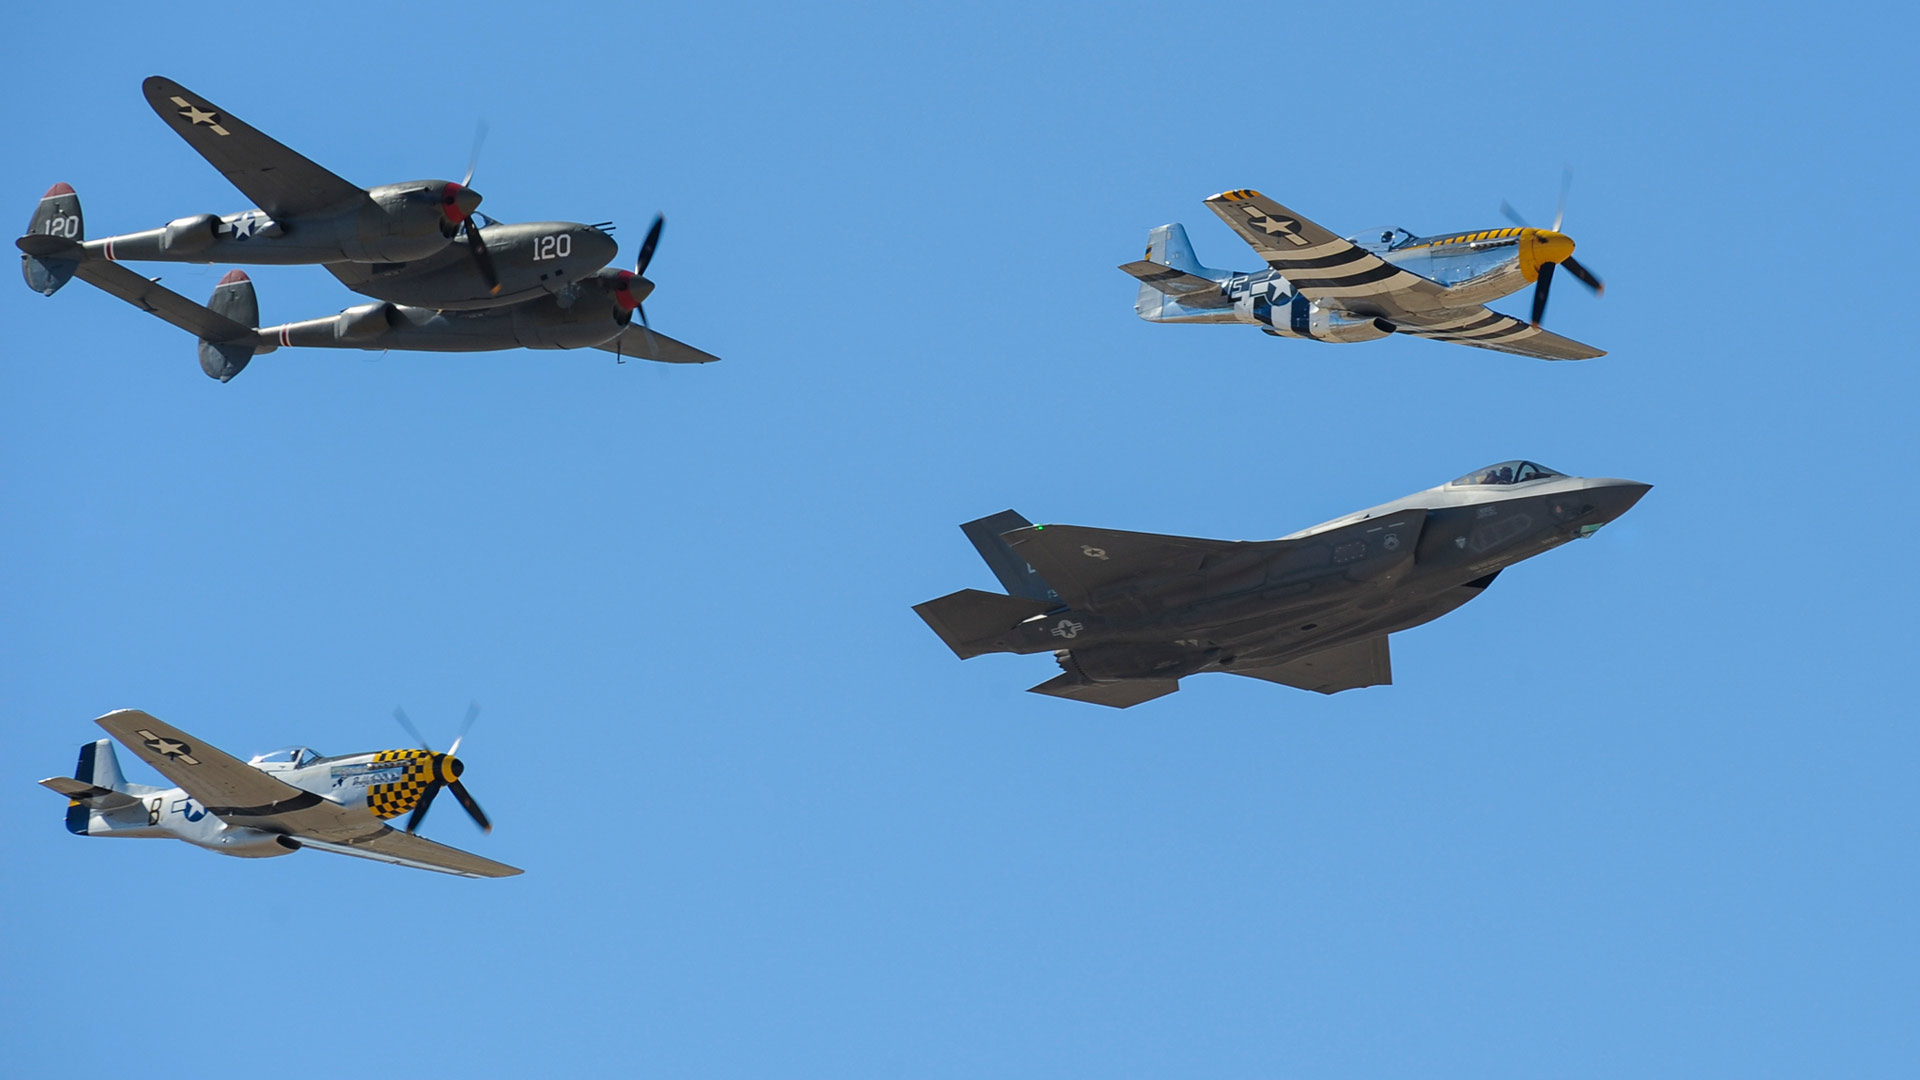 Two P-51 Mustangs, an F-35 Lightning II and a P-38 Lightning fly in formation during the 2016 Heritage Flight Training and Certification Course at Davis-Monthan Air Force Base, Ariz., March 5, 2016.